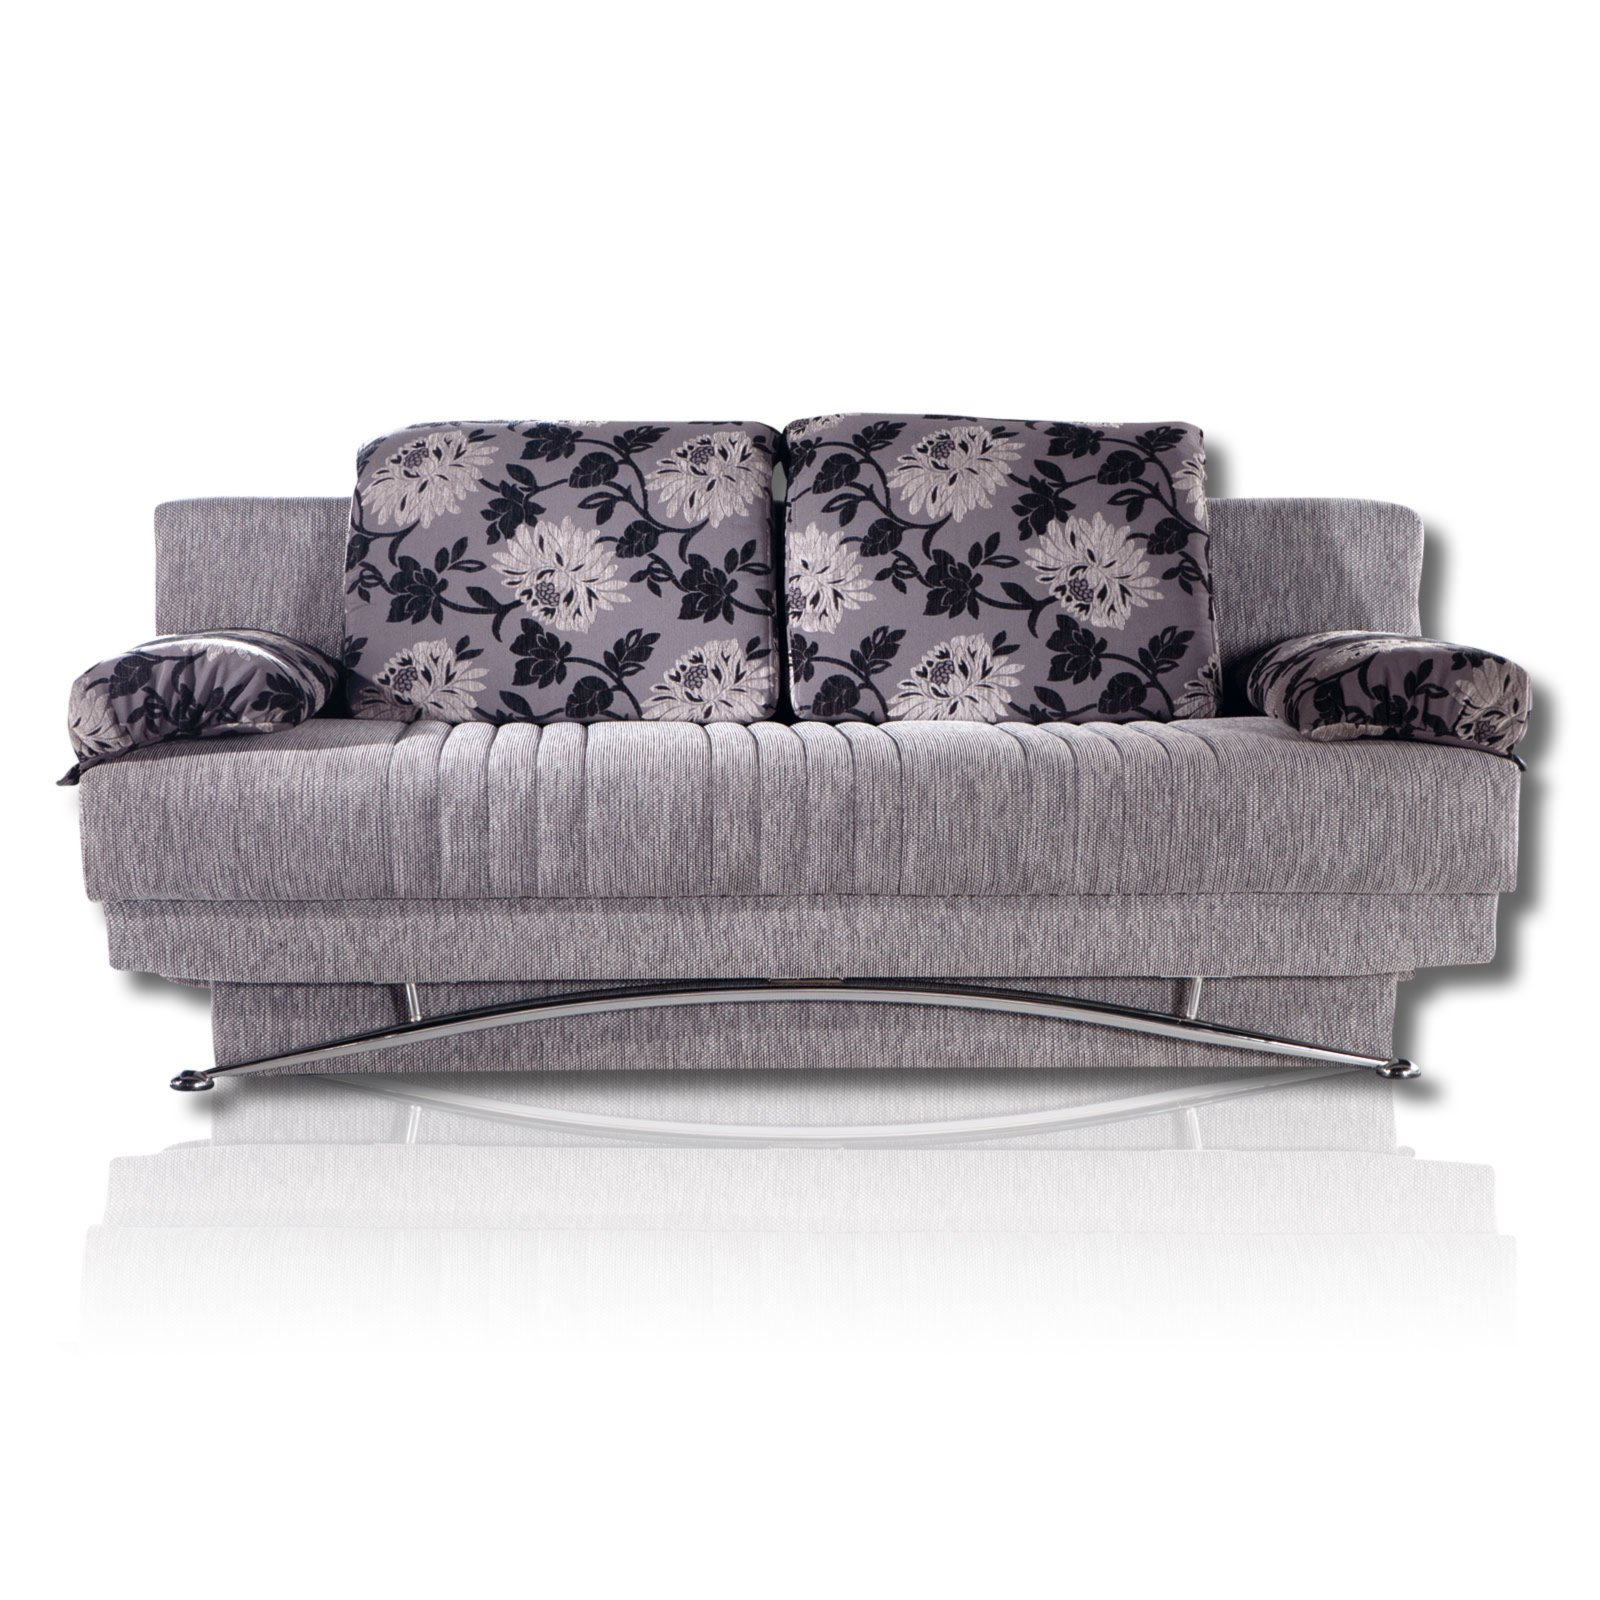 roller schlafsofa grau mit bonellfederkern ebay. Black Bedroom Furniture Sets. Home Design Ideas